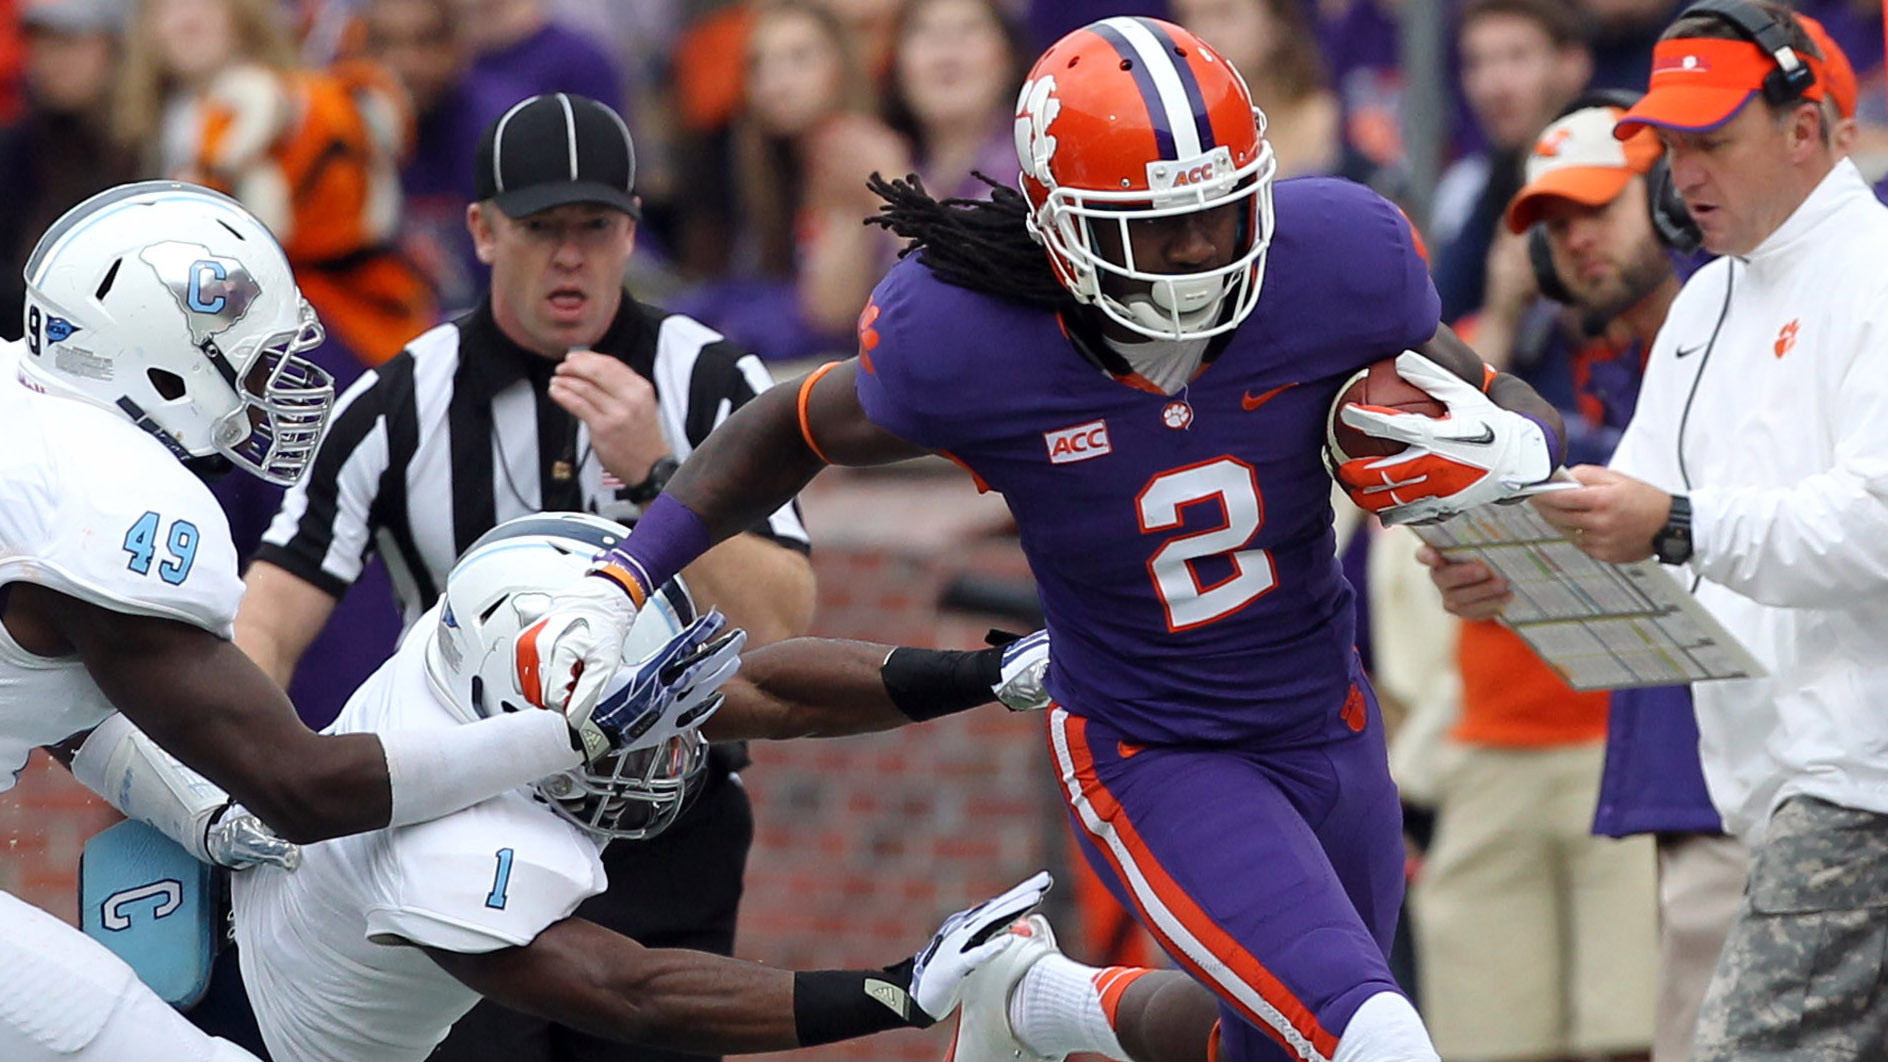 Watkins Named First-Team All-American by AFCA